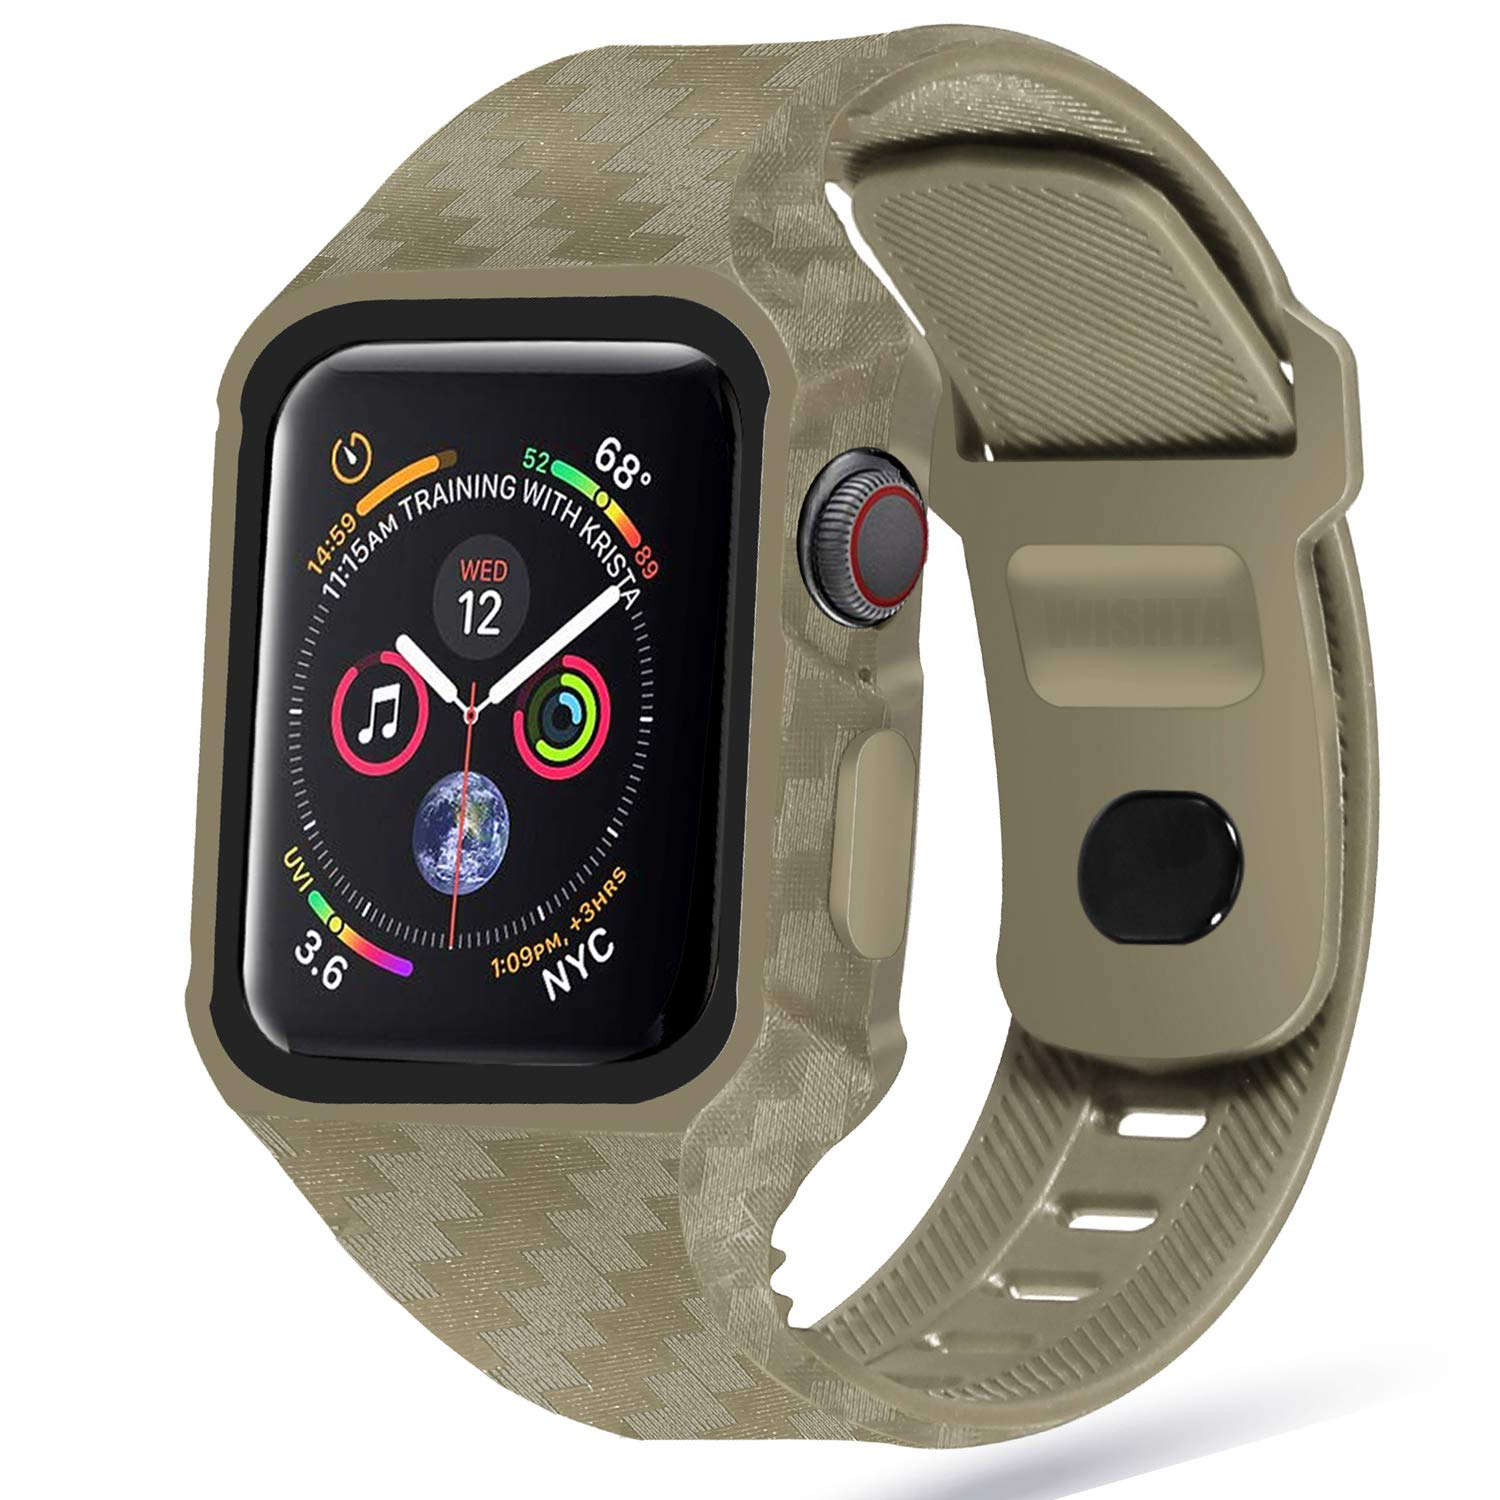 Wishta Compatible with Apple Watch 4 Case 44mm Band, Soft TPU Frame Protector Accessories with Sport Band for New iWatch Series 4 2018 (44mm-Greenish Brown case) by WISHTA